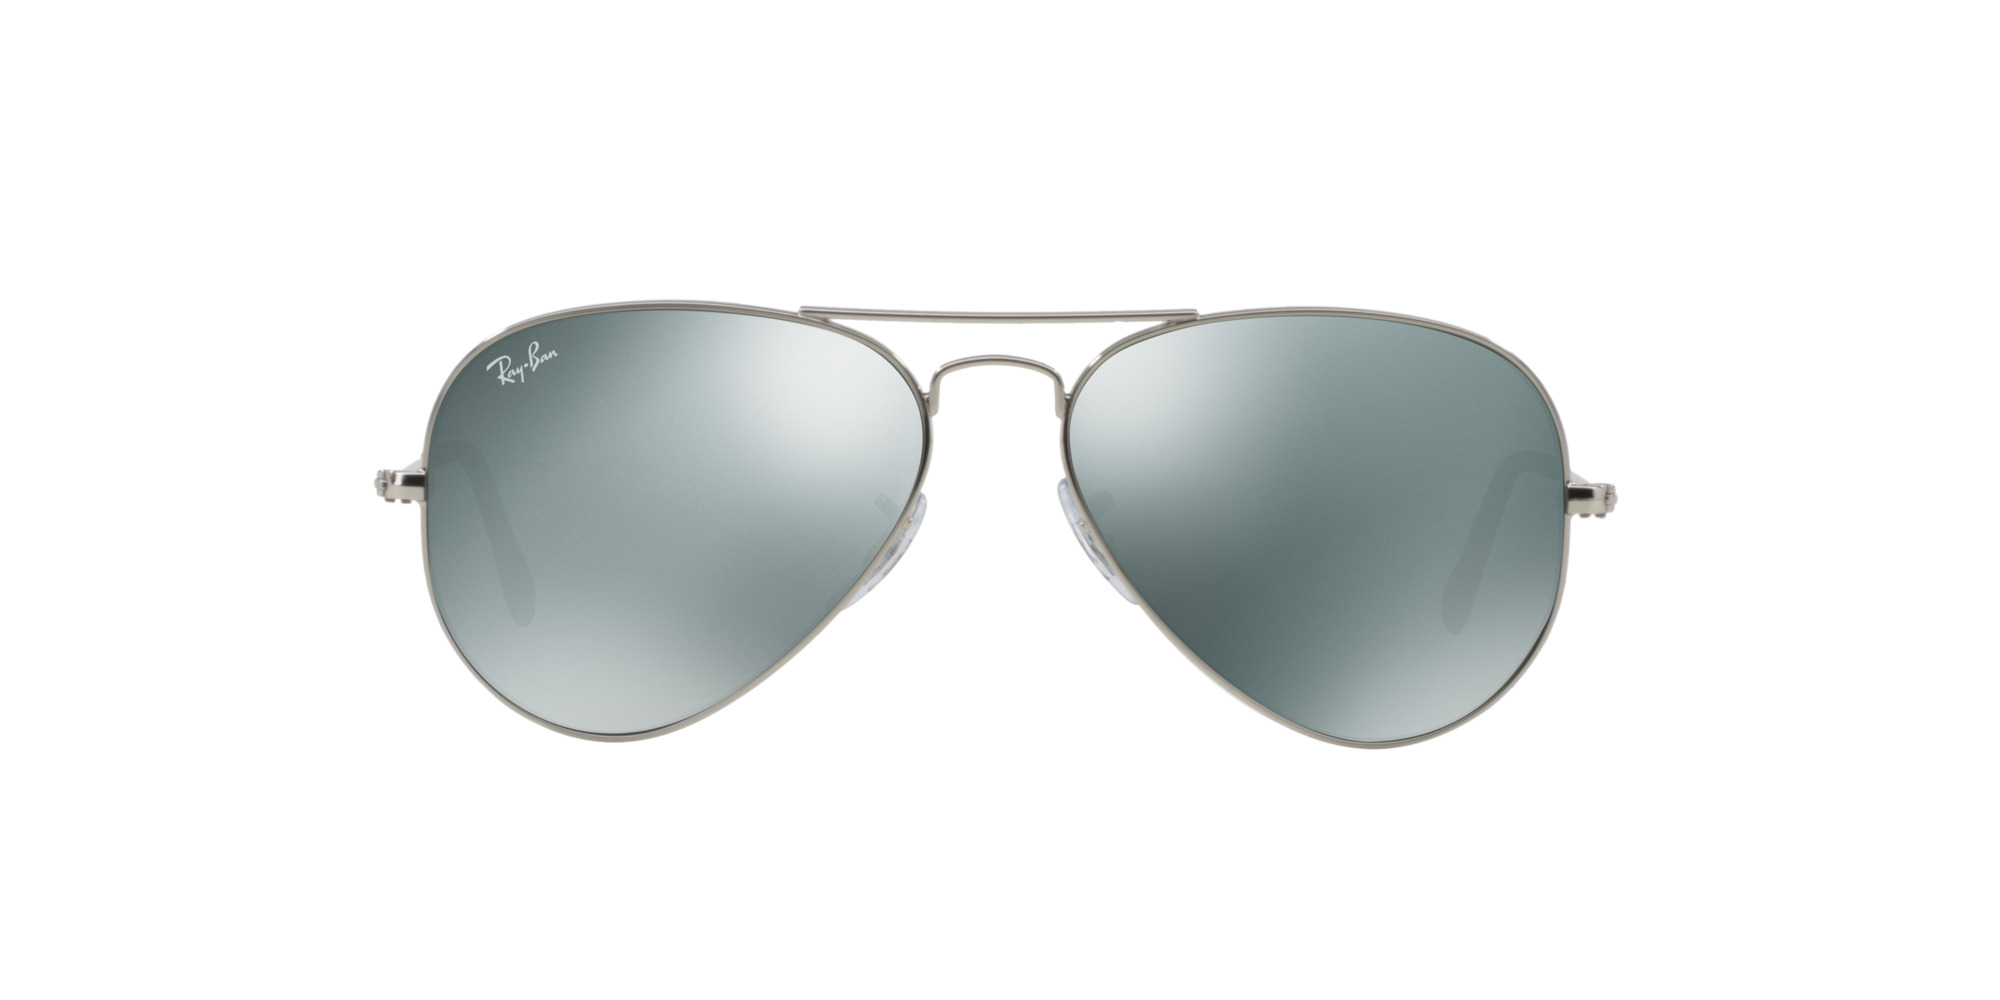 RAY-BAN AVIATOR RB 3025 W3275 55mm.-360